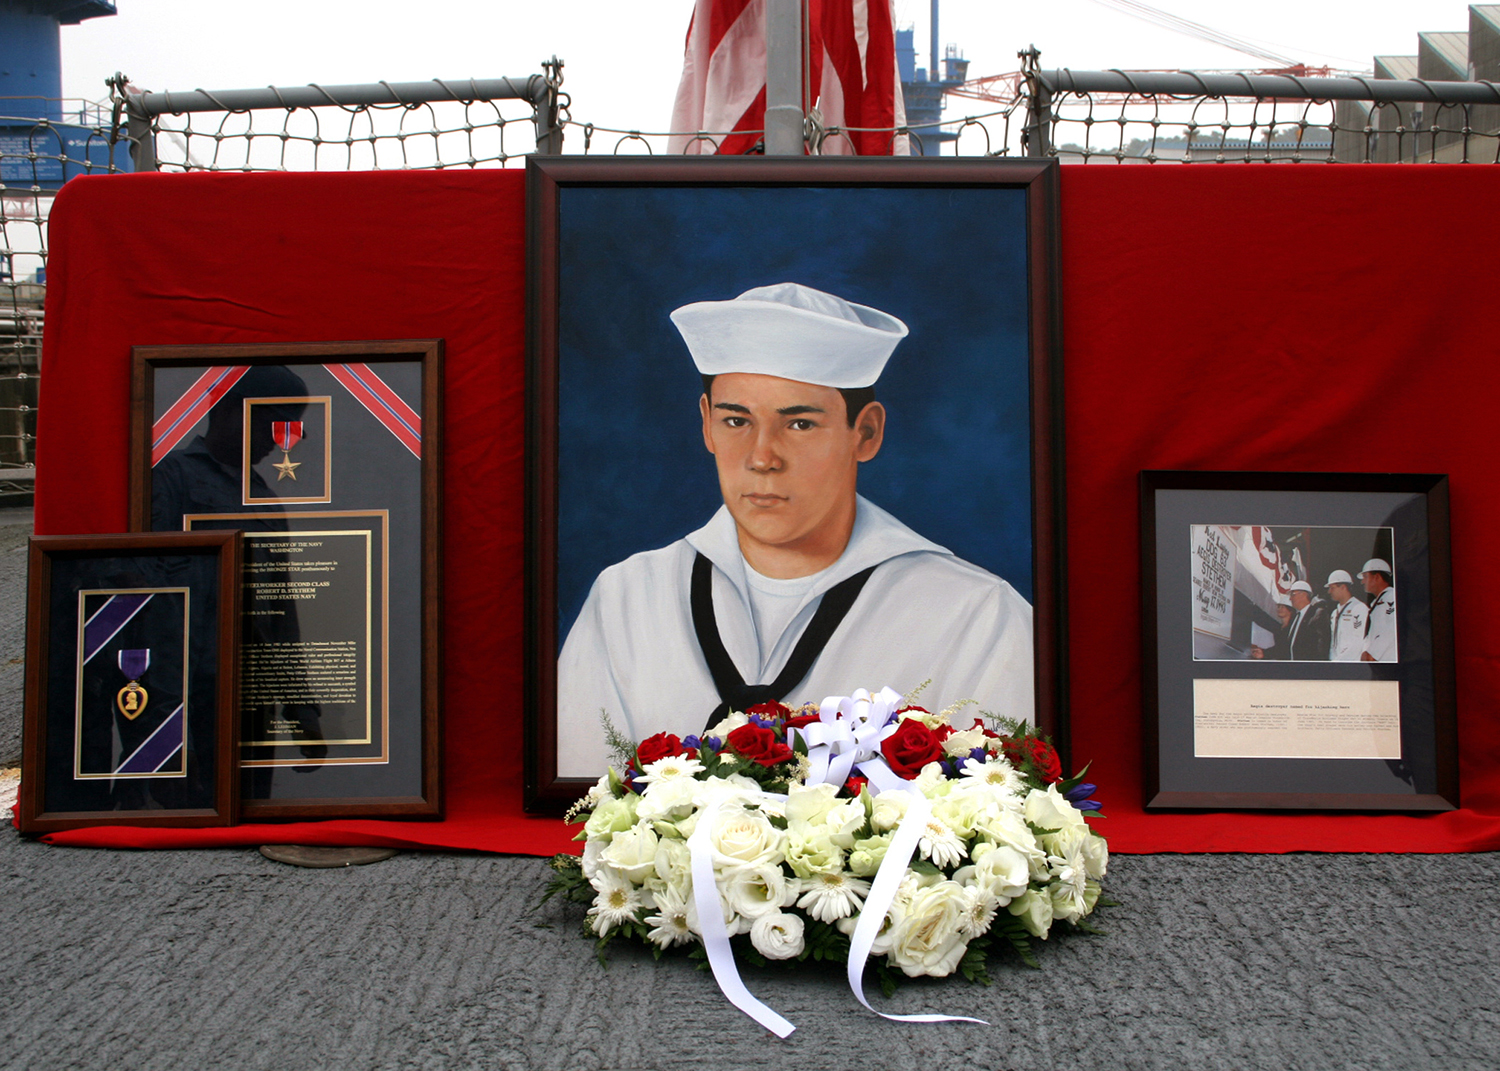 Guided-missile destroyer USS Stethem (DDG 63) sailors participate in a memorial for the ship's namesake, Robert D. Stethem, on June 15, 2006, at Yokosuka, Japan. A Navy diver, Stethem, who was returning from an assignment in the Middle East, when he was taken hostage aboard TWA 847 commercial airliner. The flight was hijacked by terrorists, and Stethem was shot to death after being tortured by the terrorists on June 15, 1985. (Ensign Danny Ewing Jr./Navy)